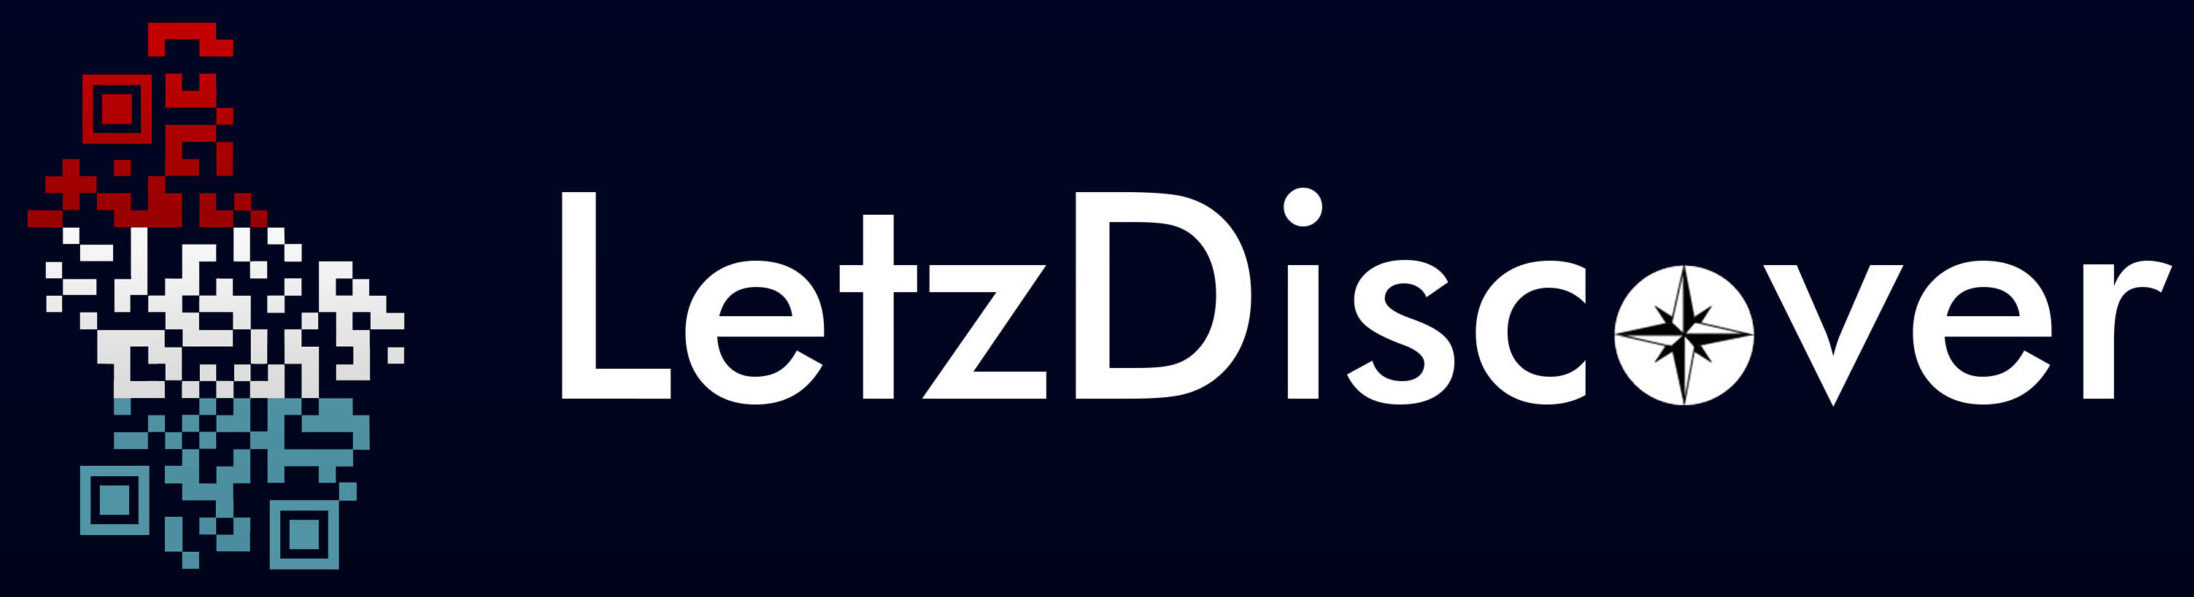 LetzDiscover